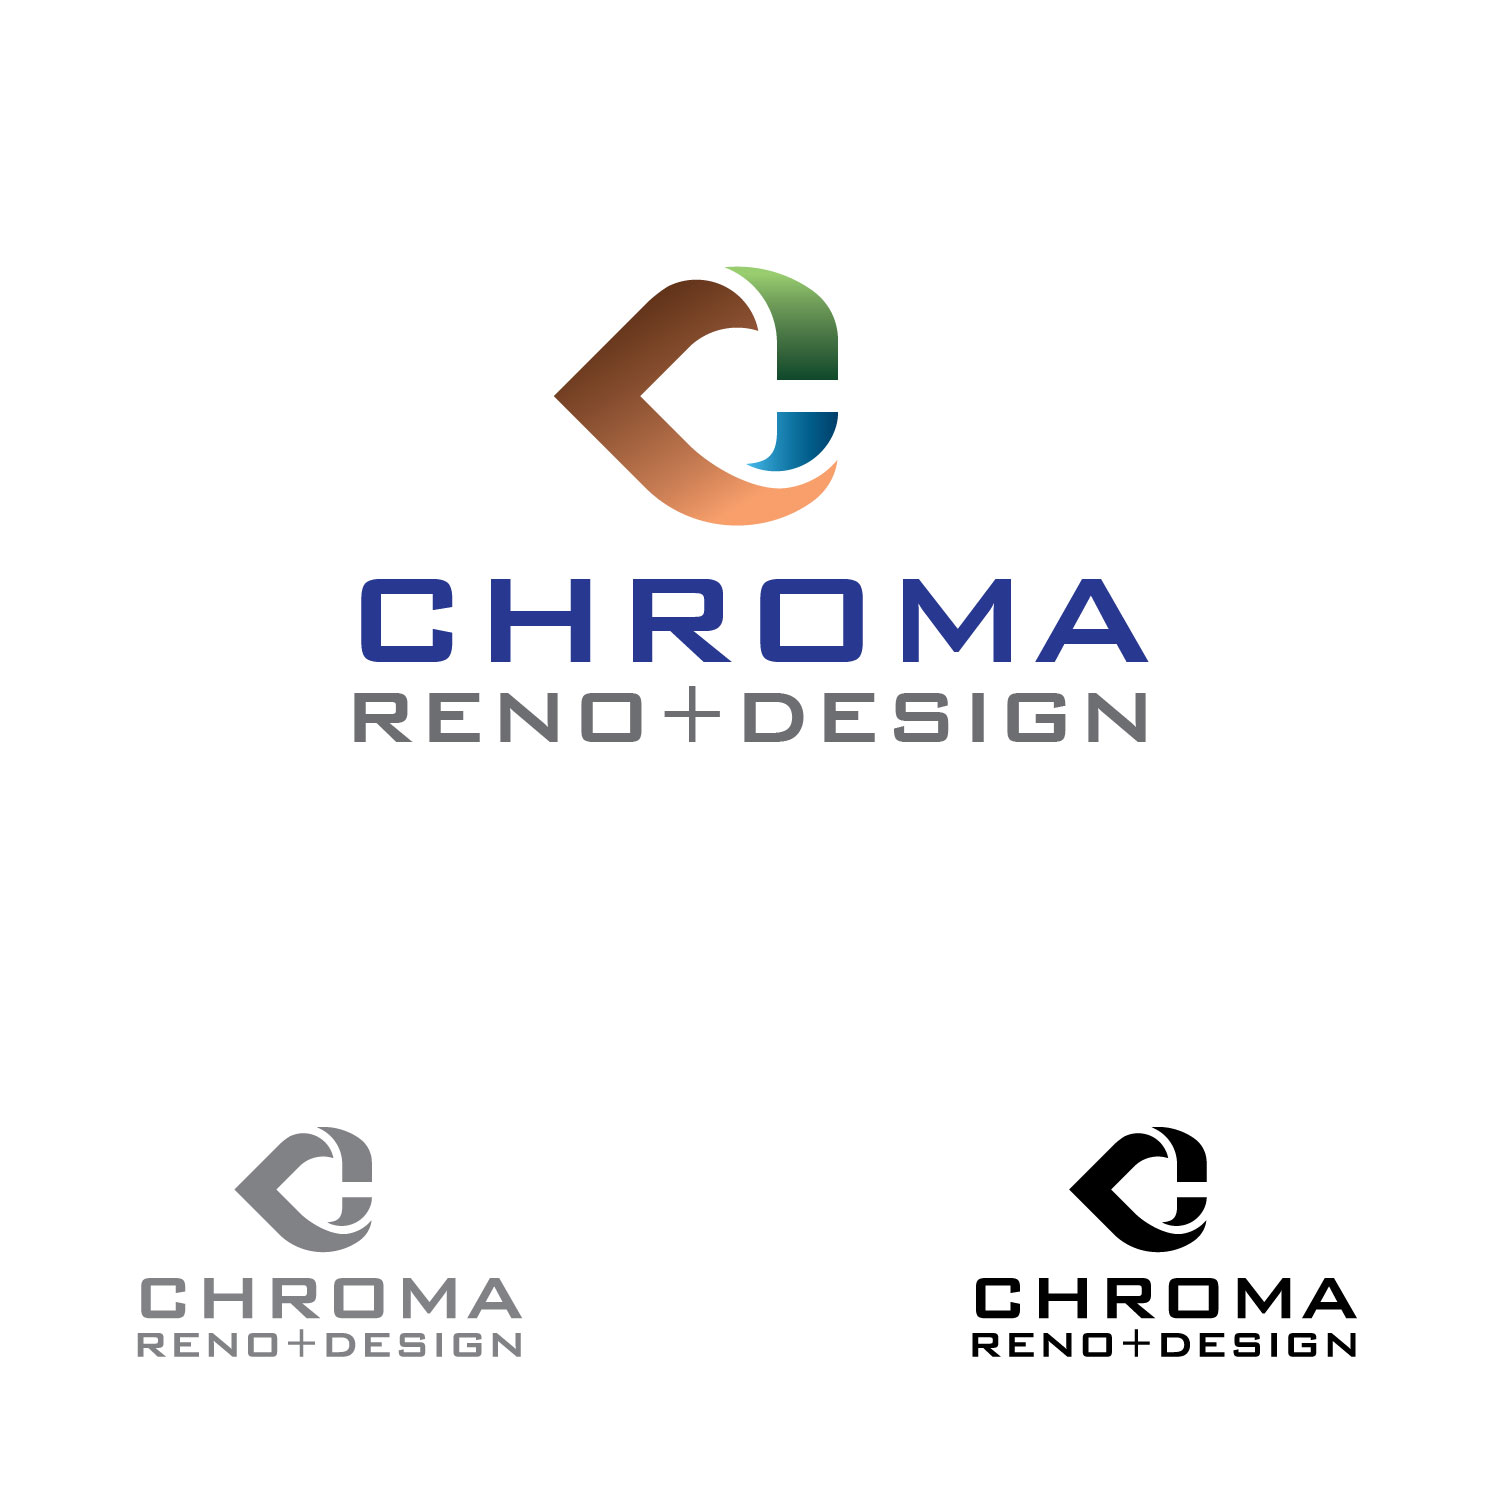 Logo Design by lagalag - Entry No. 302 in the Logo Design Contest Inspiring Logo Design for Chroma Reno+Design.